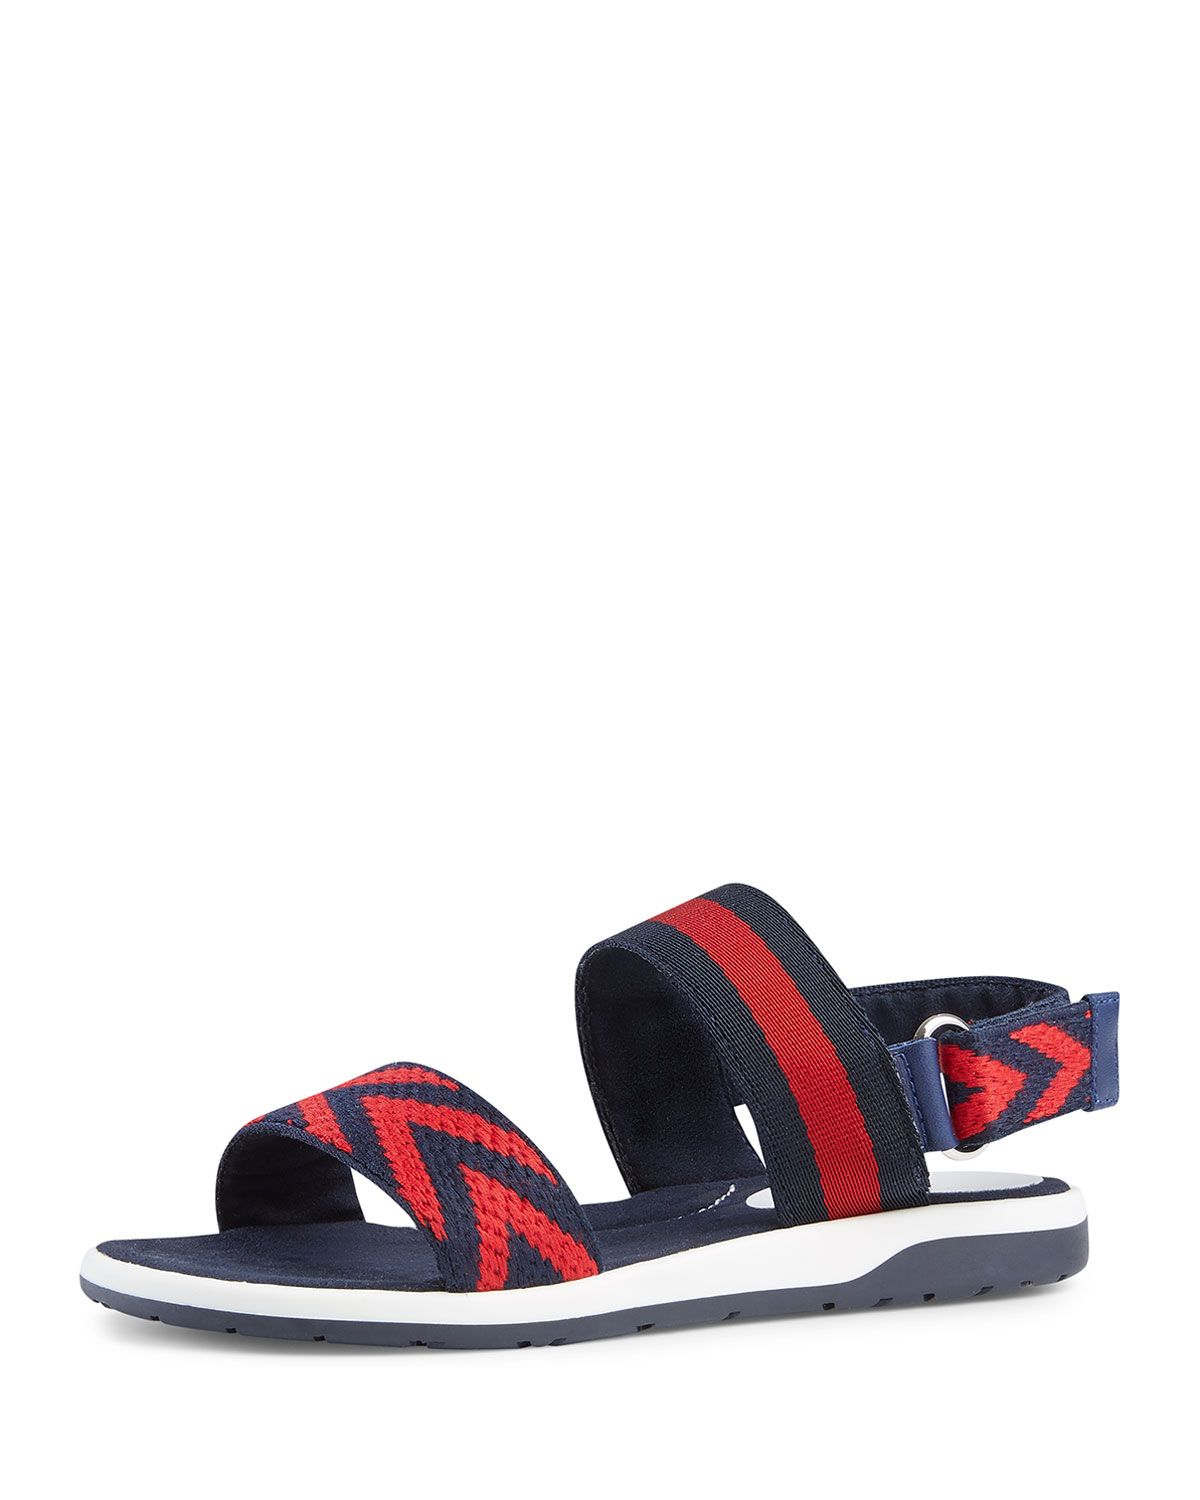 8705cc2a3 GUCCI CHEVRON LEATHER SANDAL, BLUE/RED, YOUTH. #gucci #shoes ...